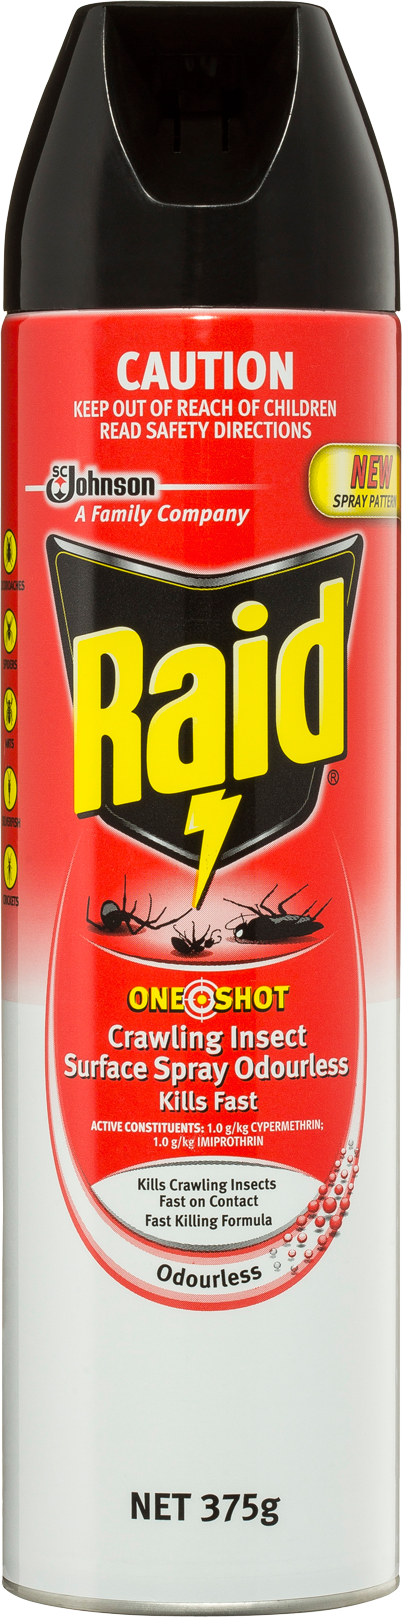 Raid one shot crawling insect surface spray odourless